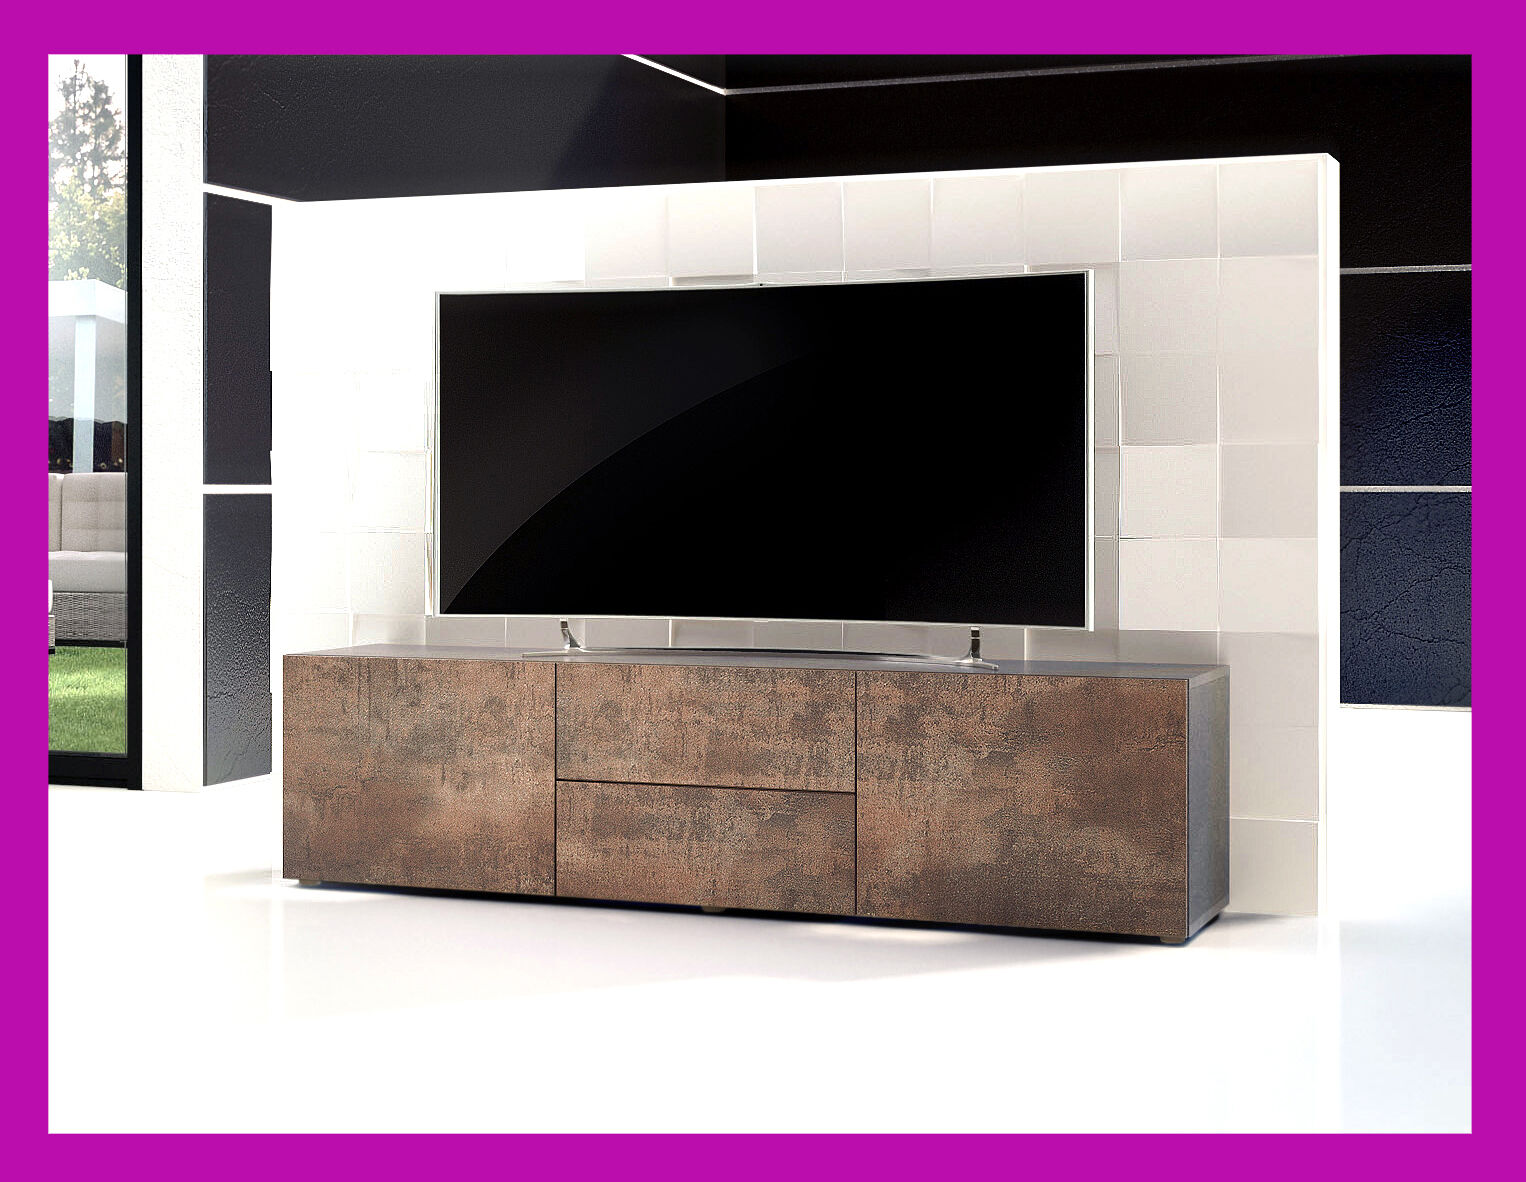 Meuble buffet bas table basse tv armoire salon salle - Meuble bas design salon ...